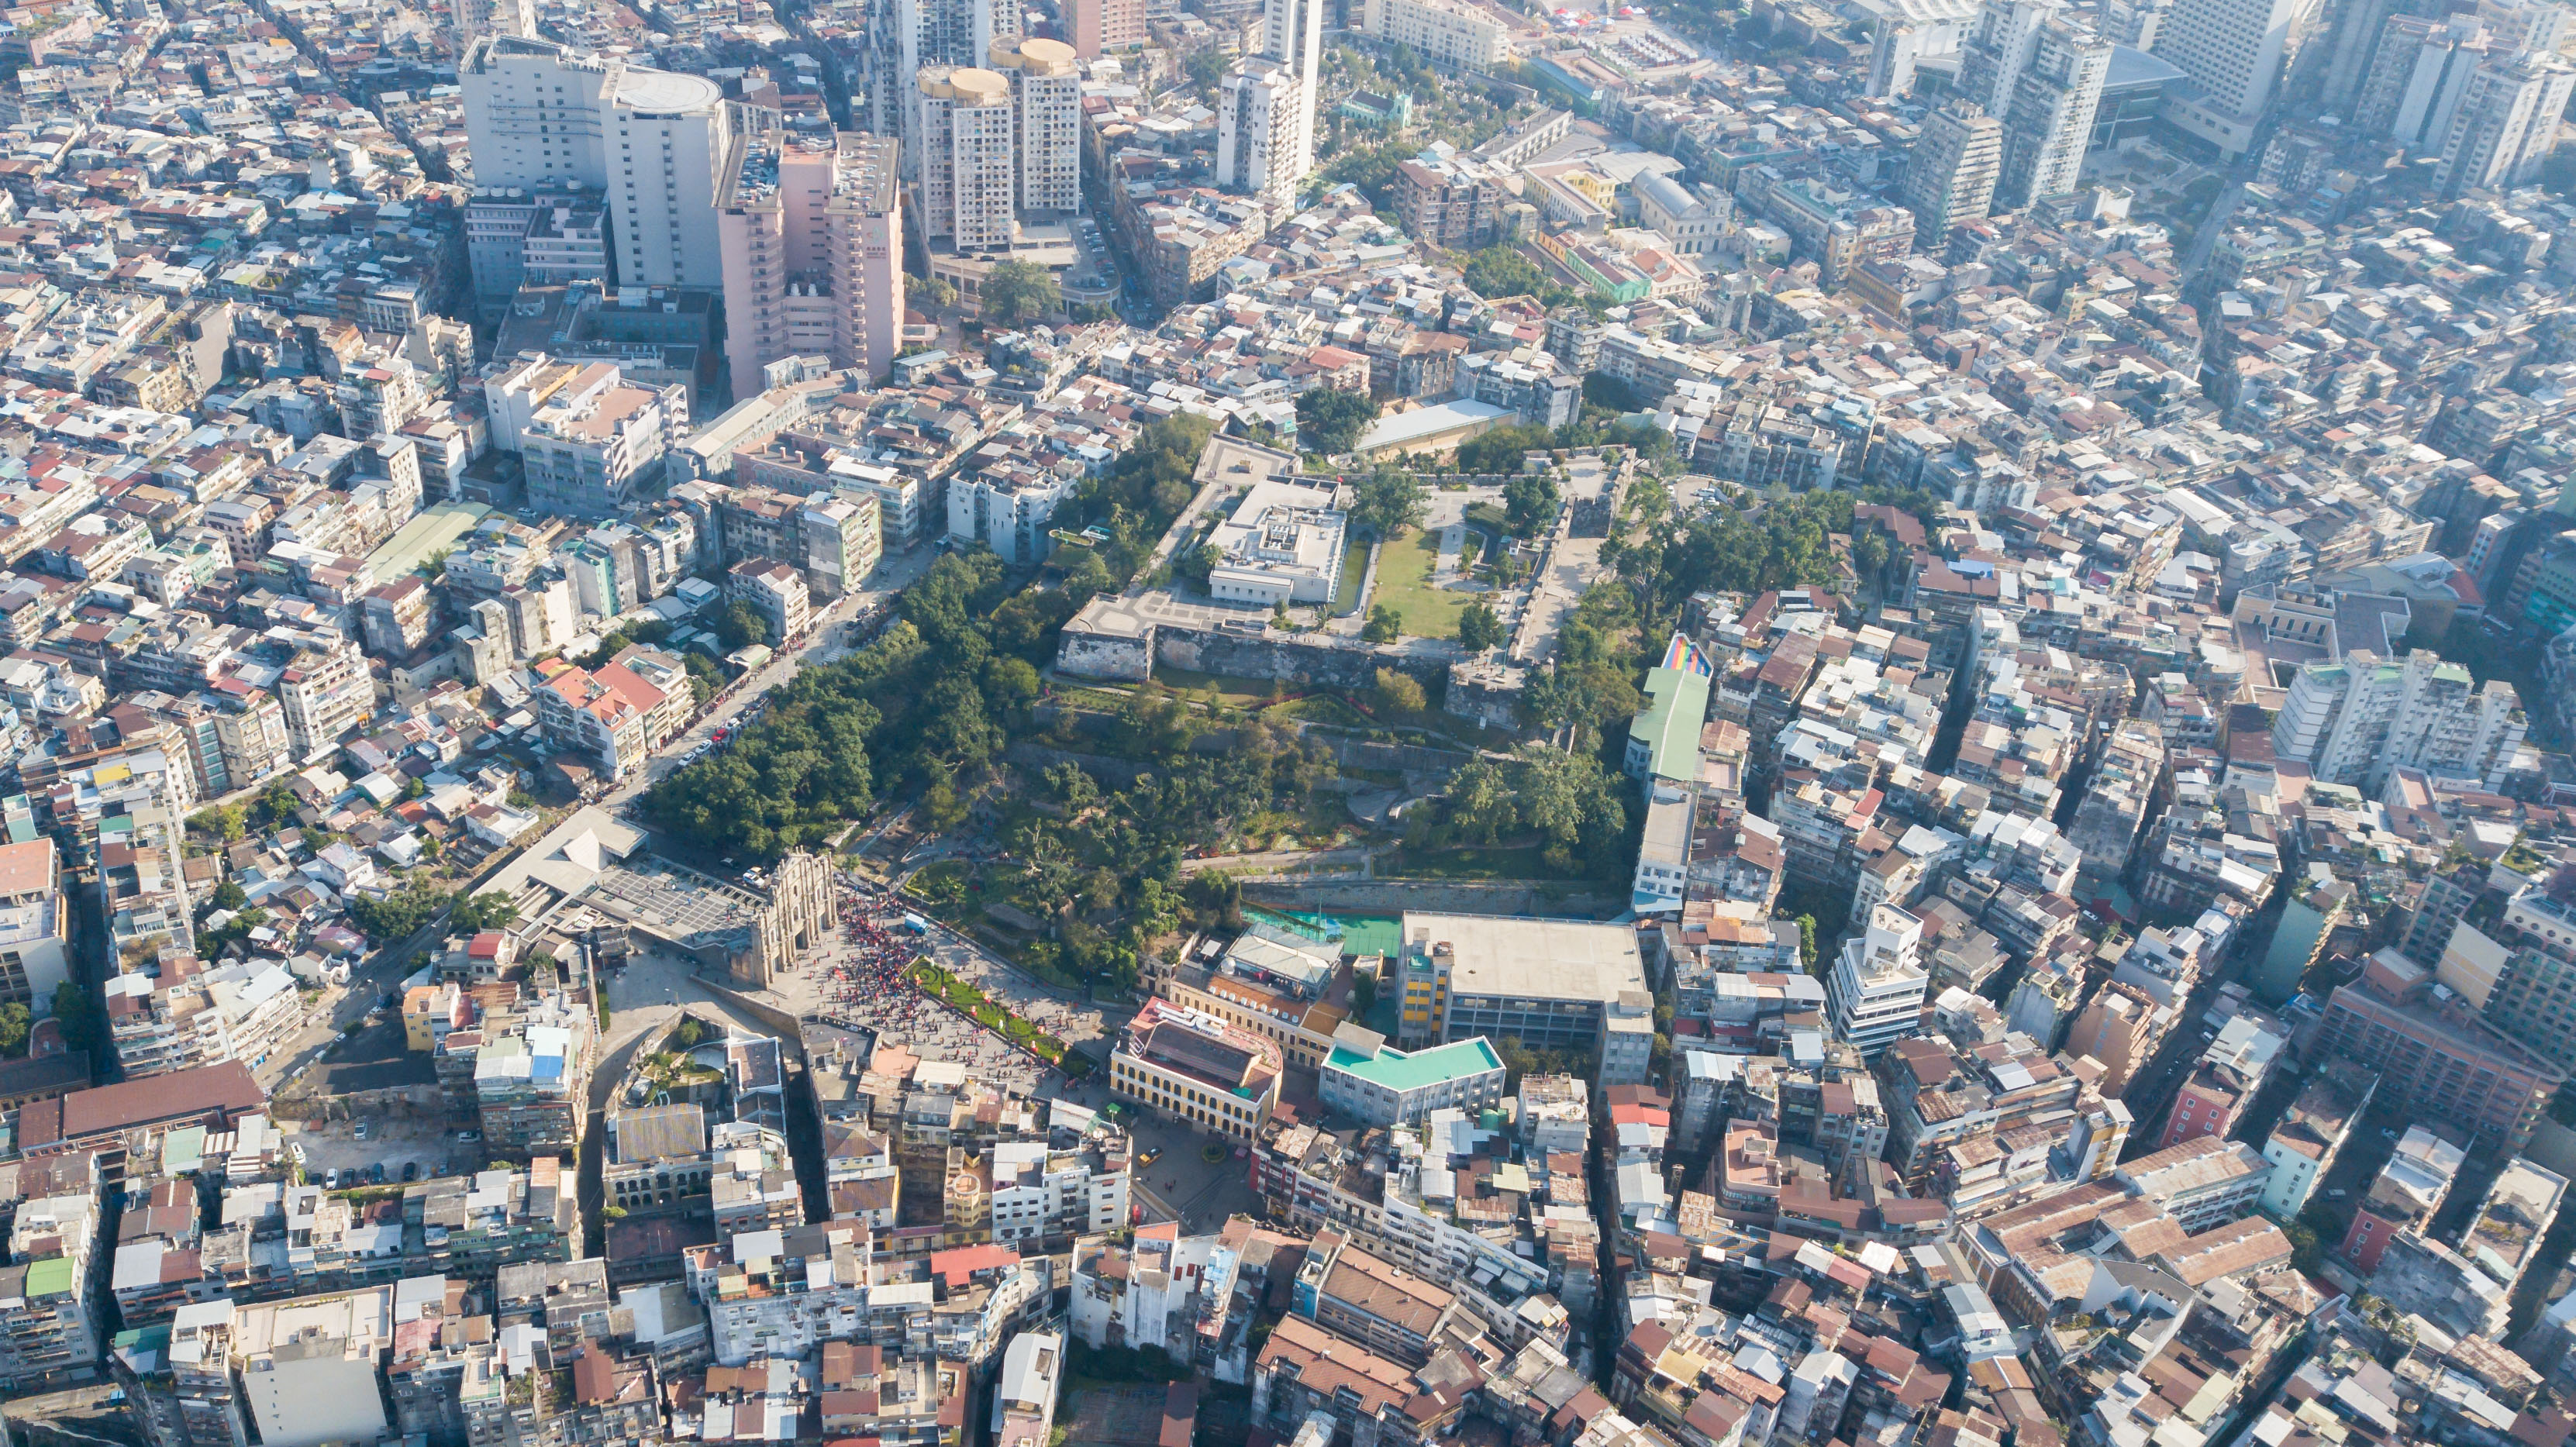 Eco China: Ecological Environment in Macao - Xinhua   English.news.cn